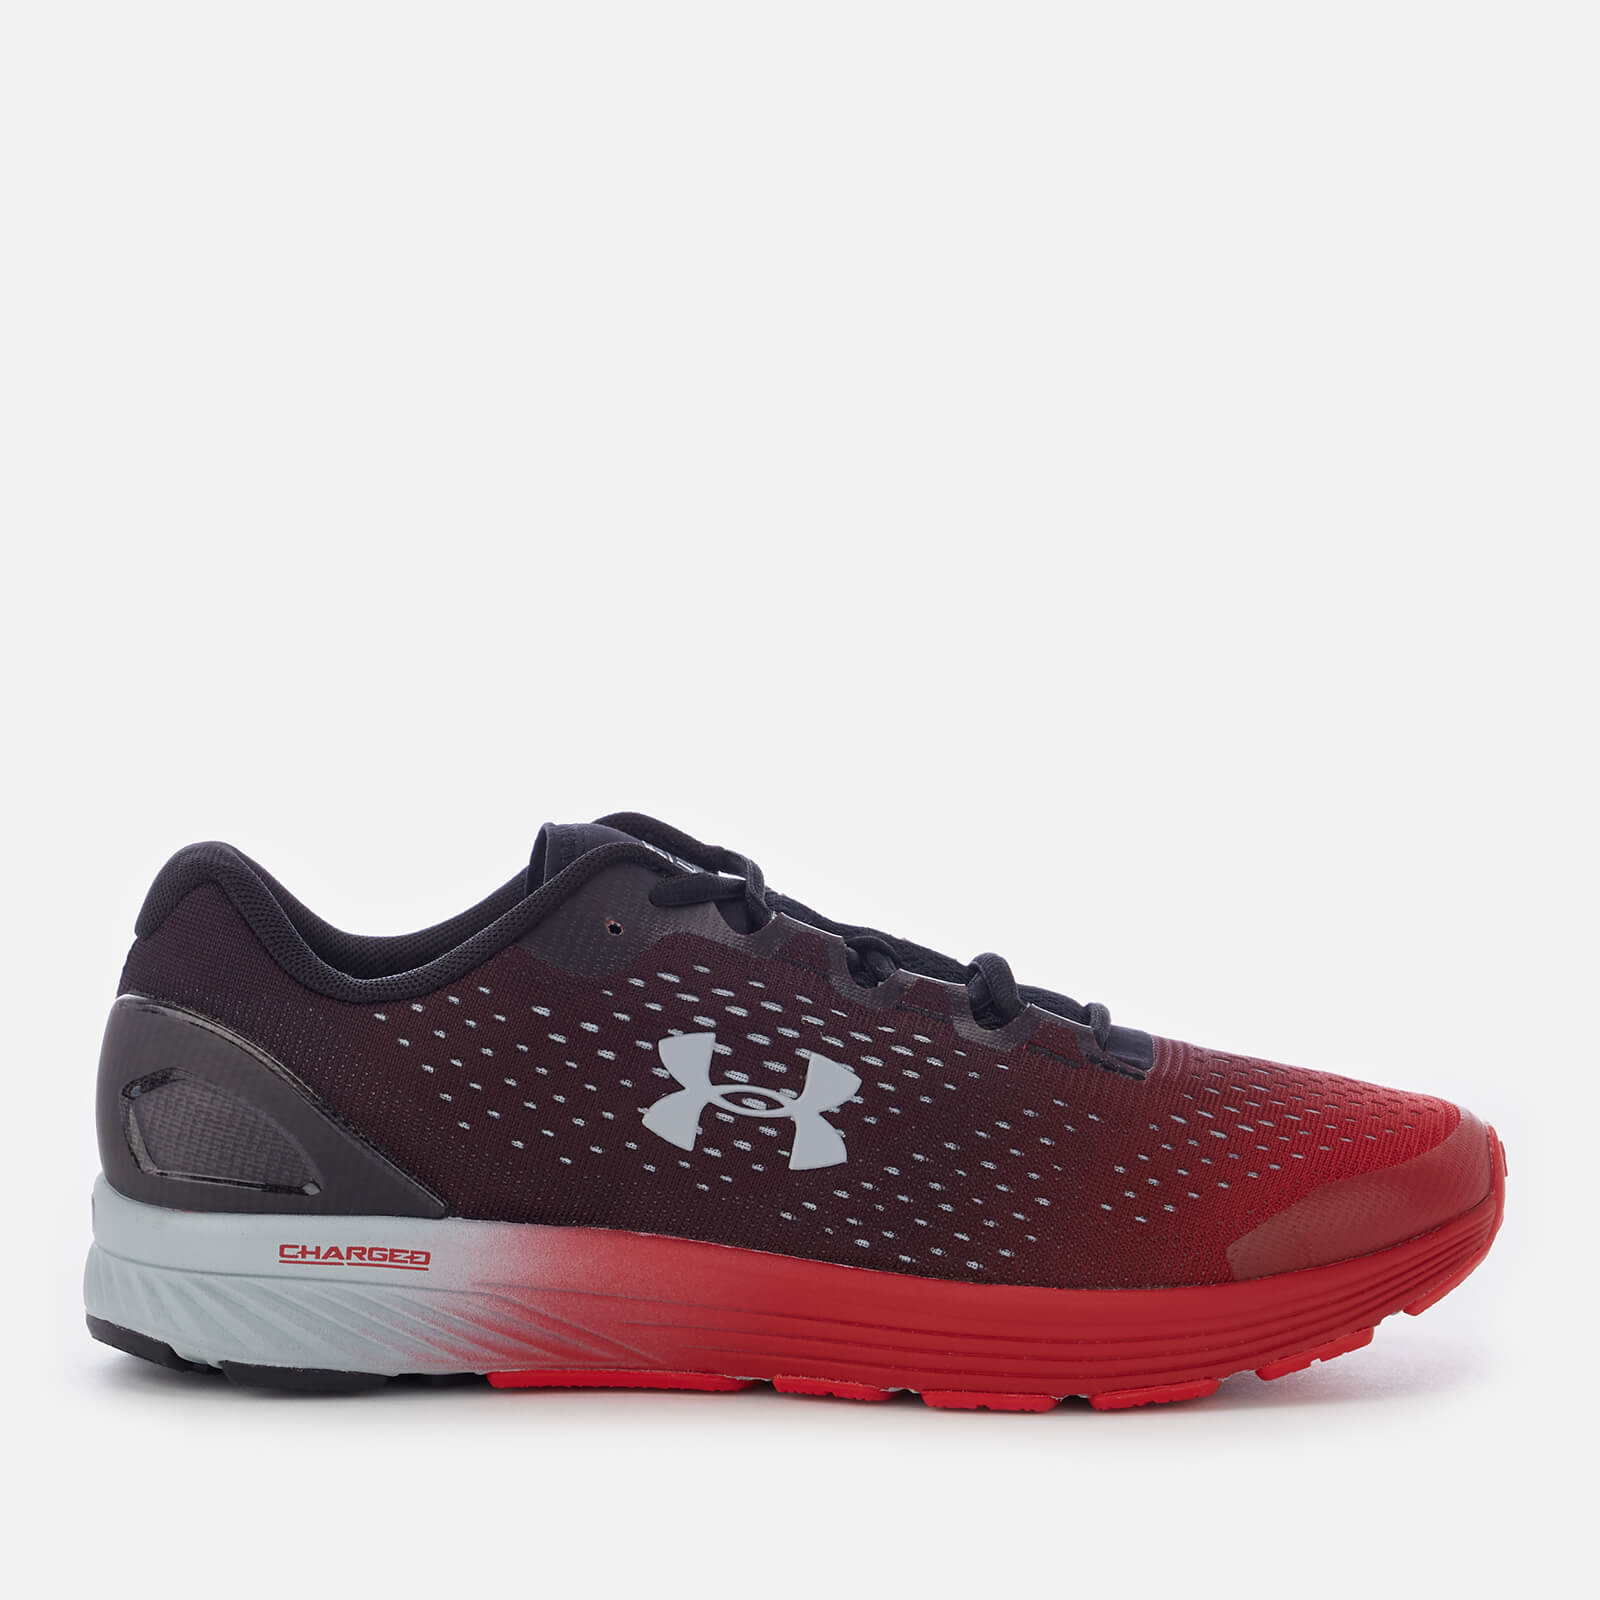 9af2acd64c Under Armour Men's Charged Bandit 4 Trainers - Black.Red Sports ...